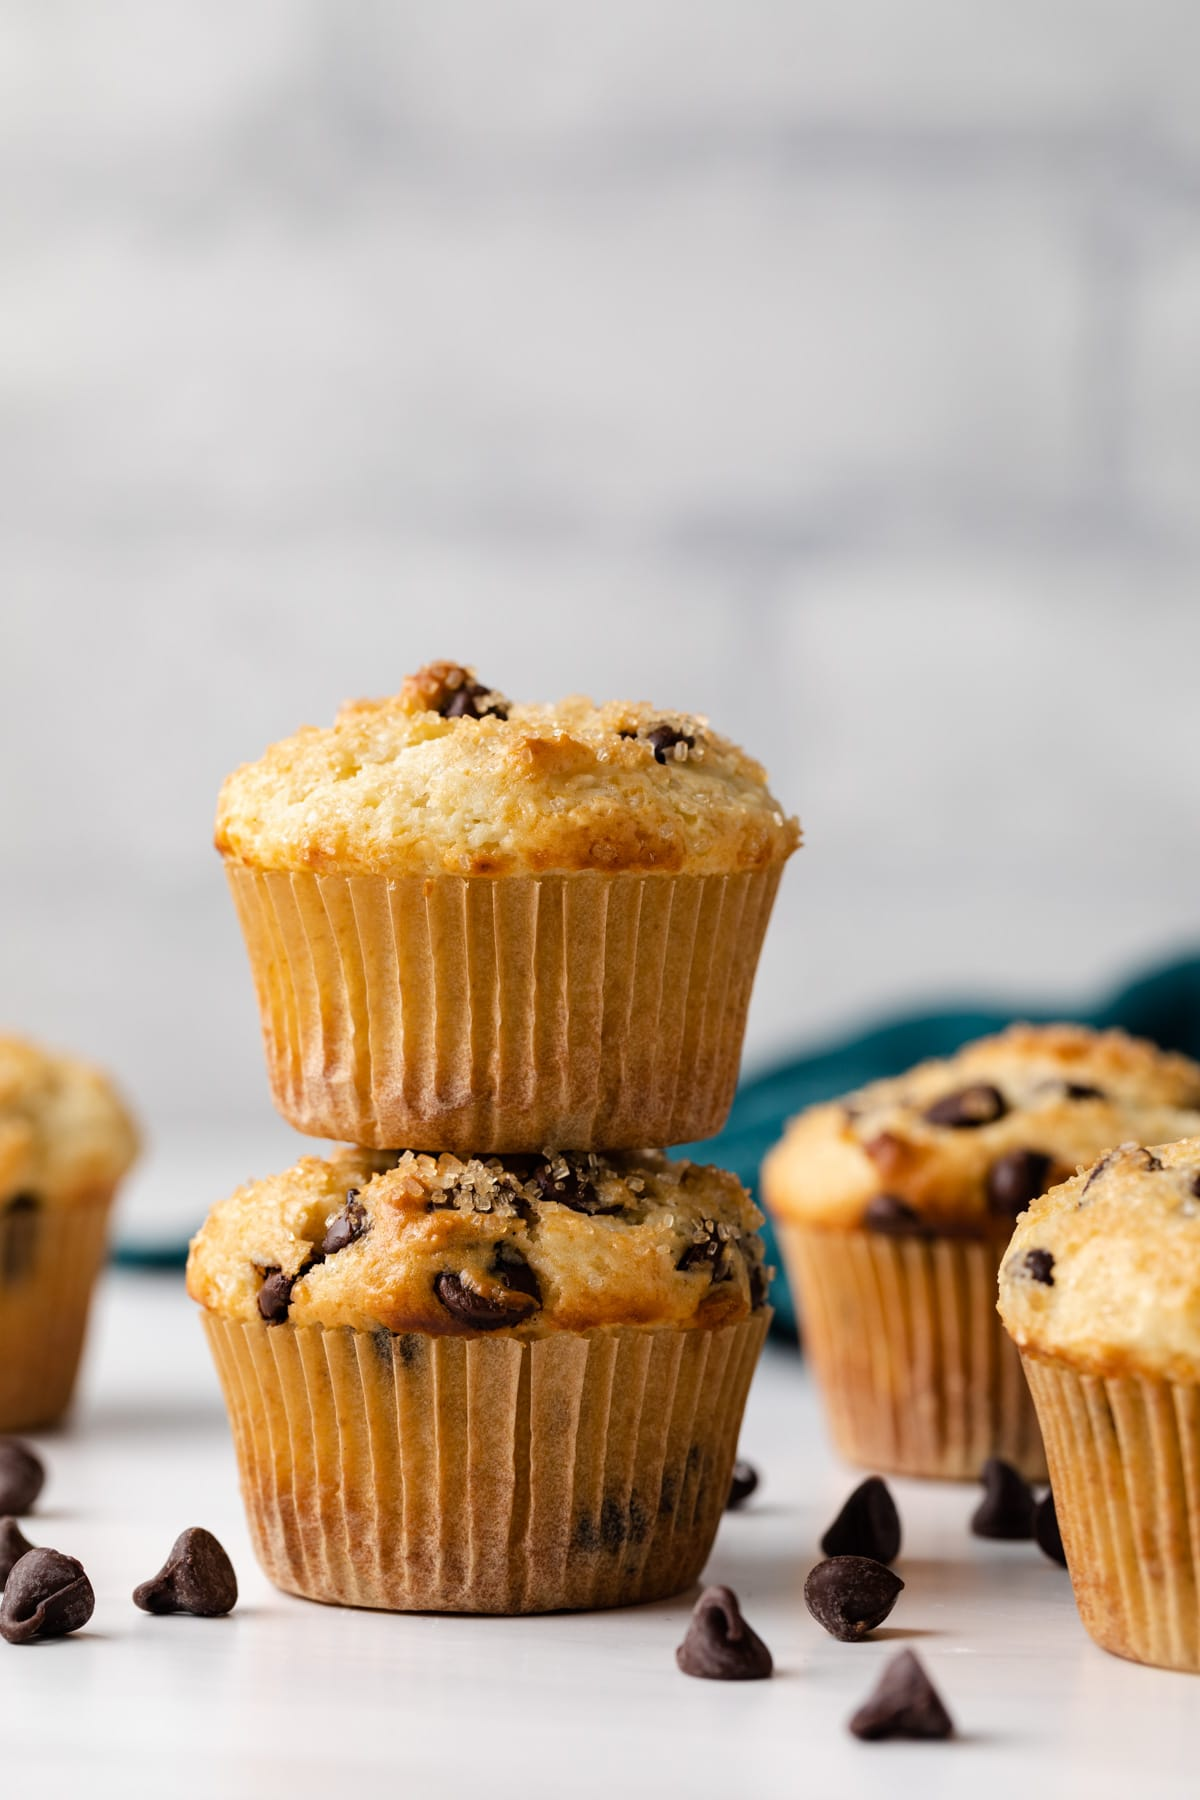 two chocolate chip muffins stacked with more muffins and chocolate chips scattered around